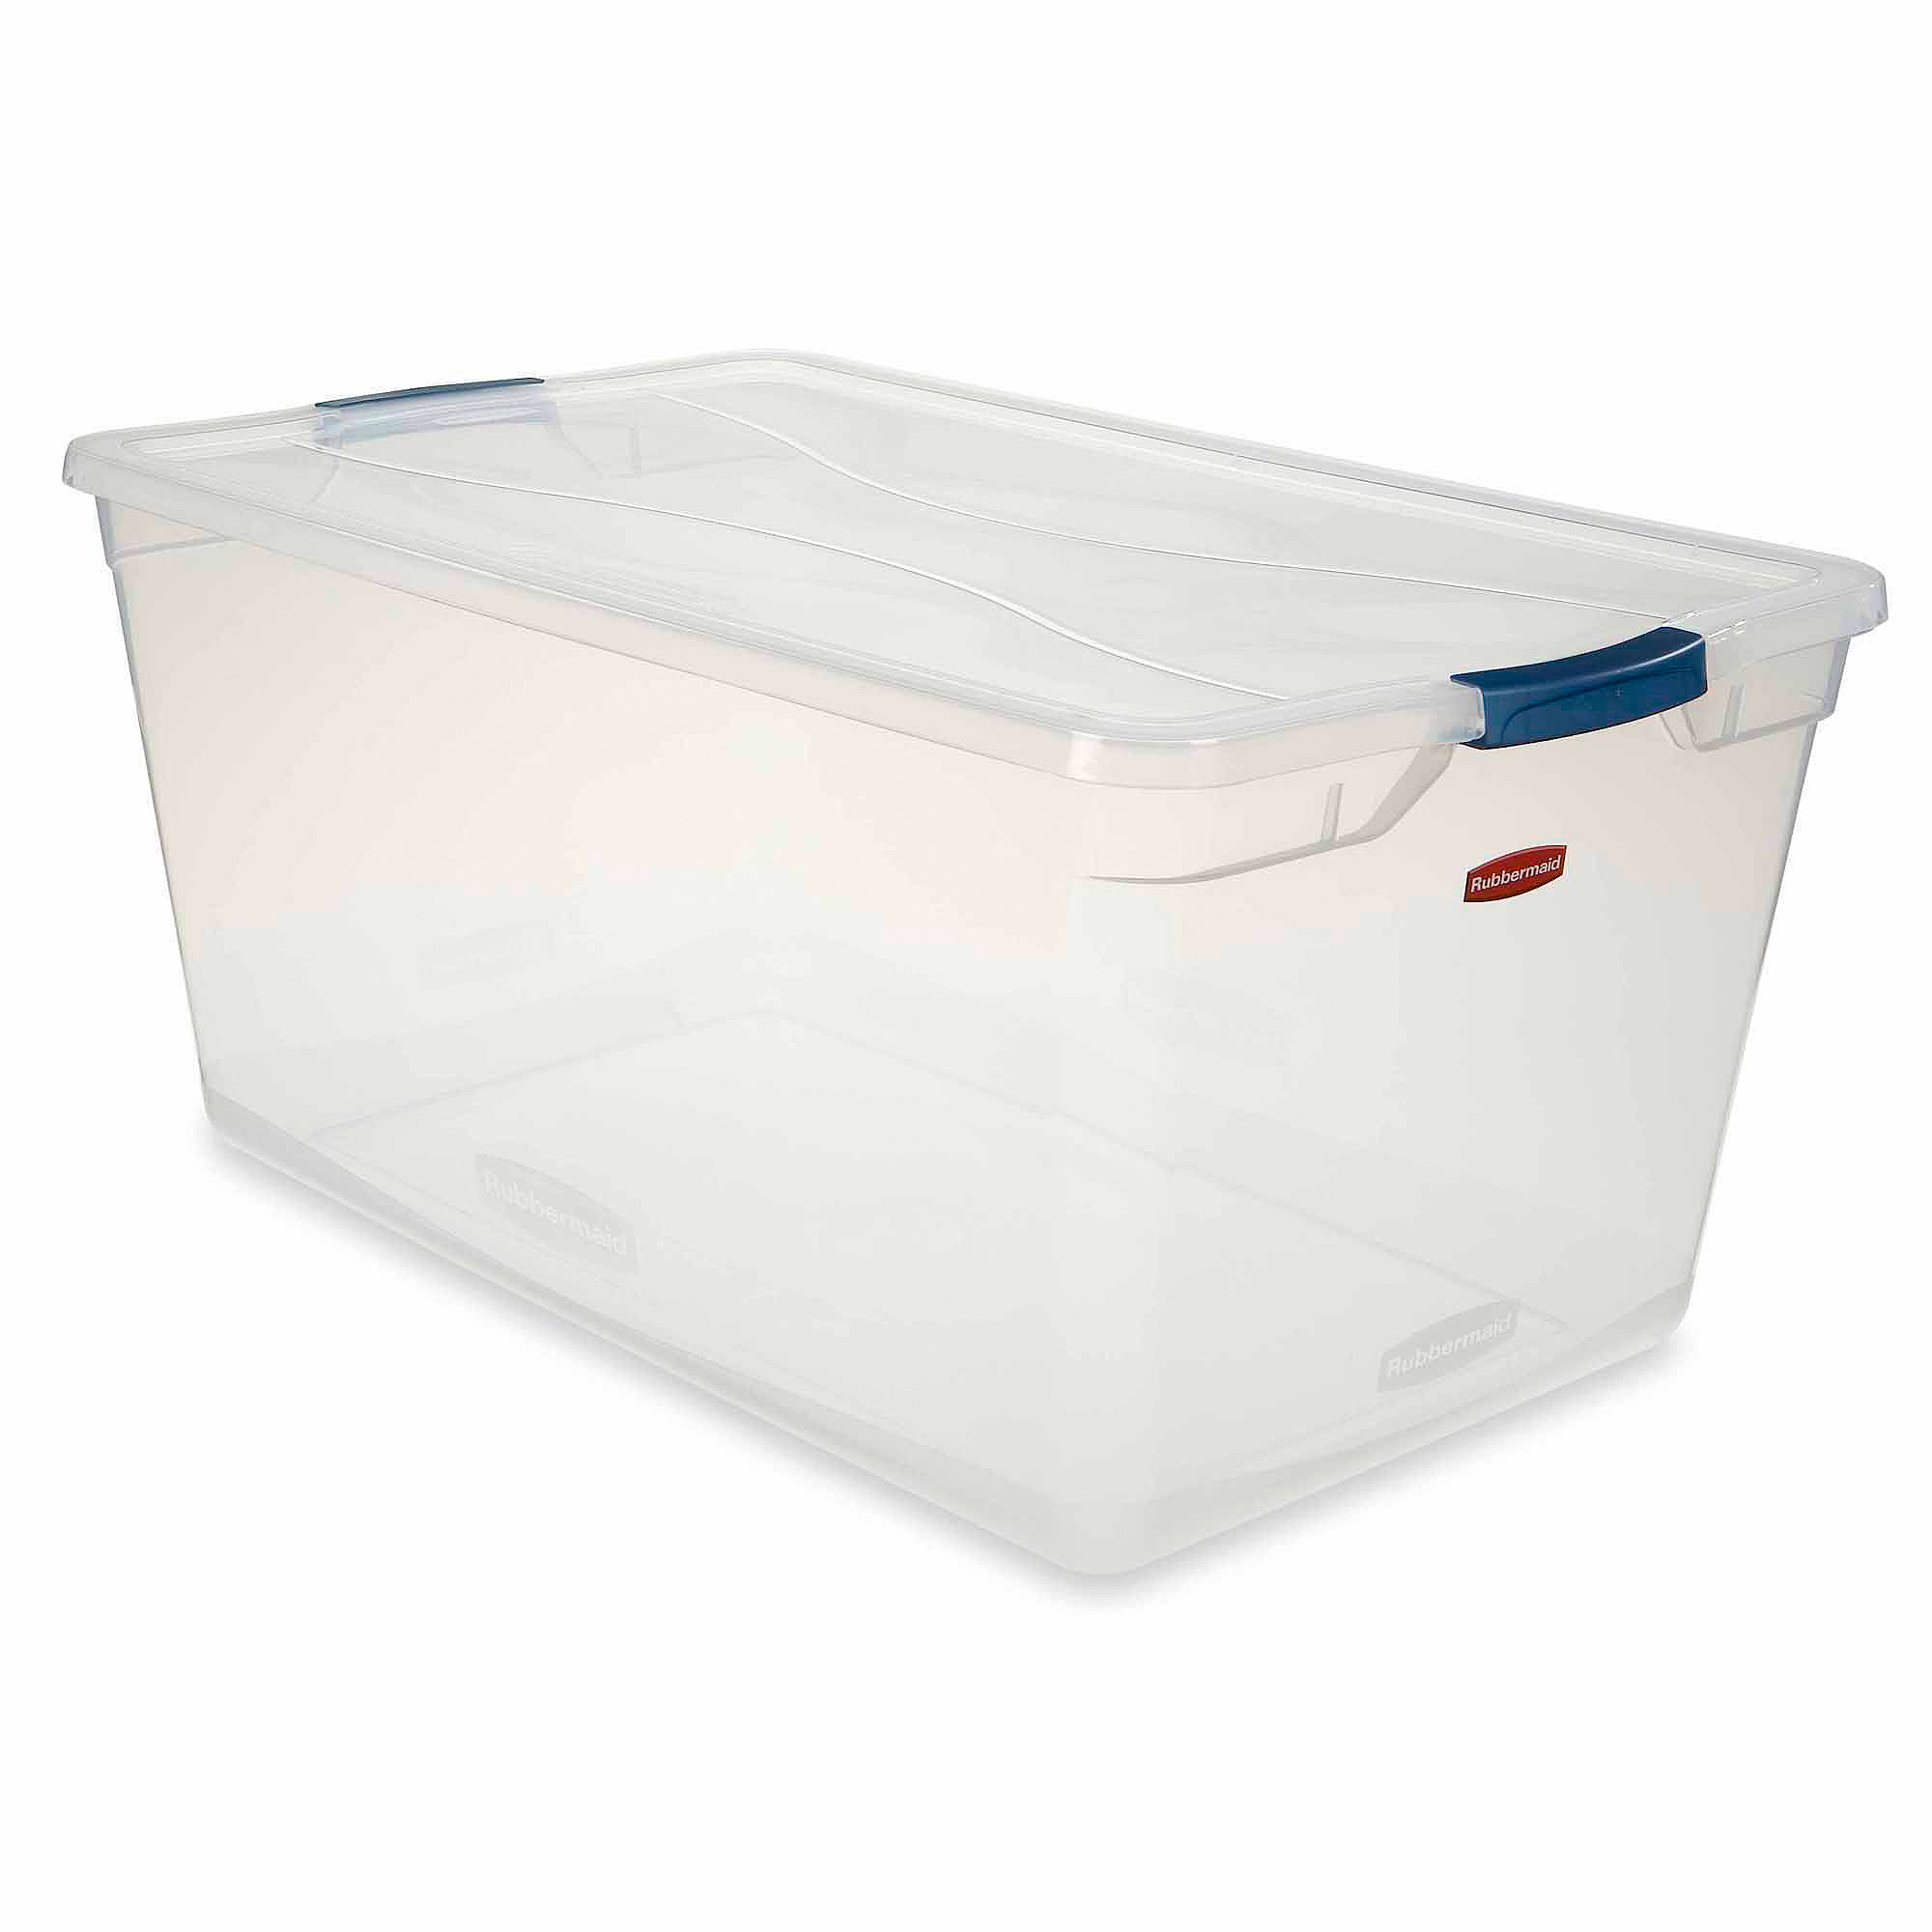 Rubbermaid Clever Store Clears Standard Latch Storage Container, 95 Qt,  Clear